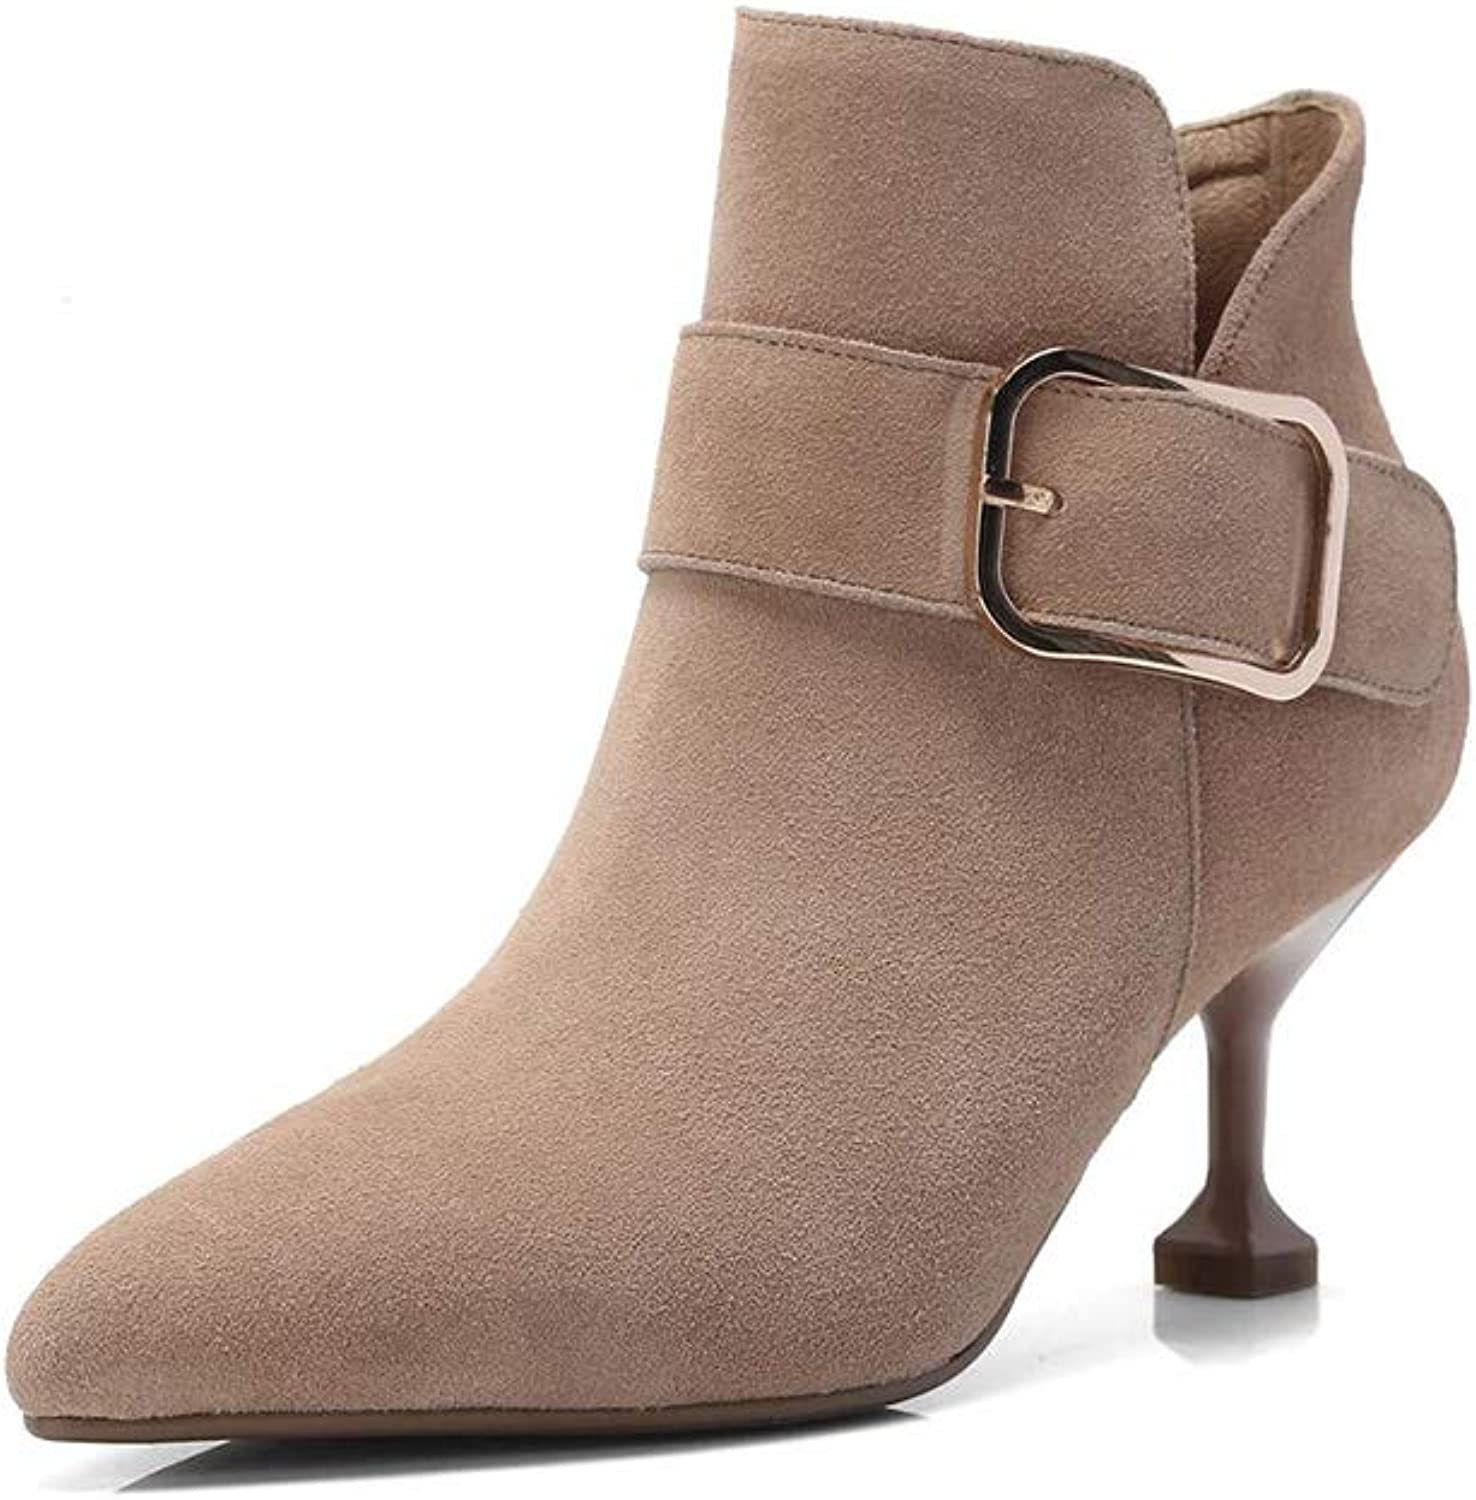 Xiaolin High Heel Women's Ankle Bootie Western Ankle Bootie Low Block Stacked Heel Martin Boots (color   A, Size   US6.5-7 EU37 UK4.5-5 CN37)